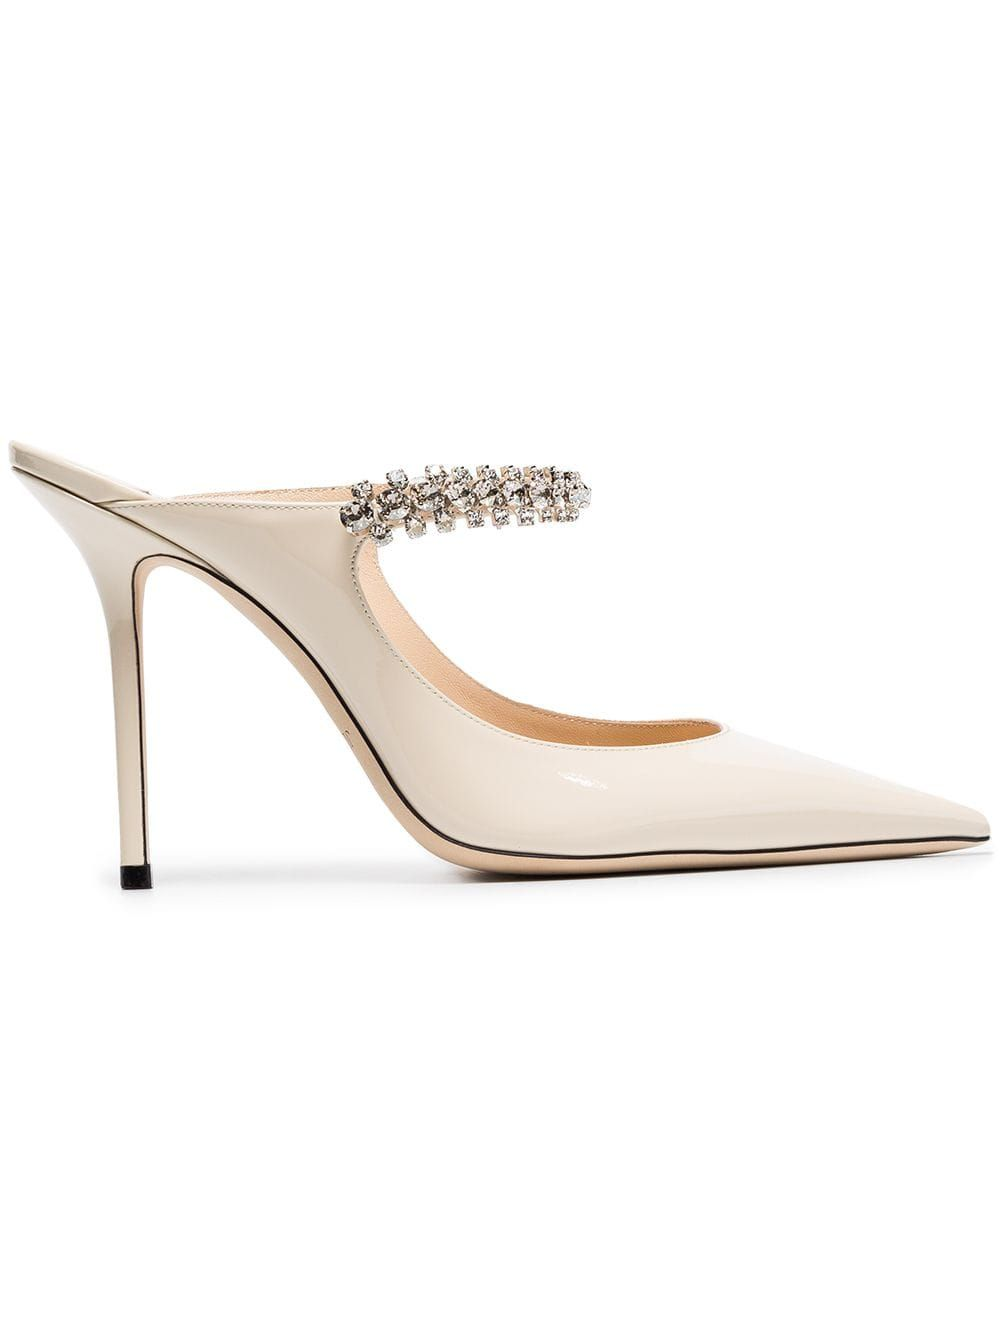 b612fec82c4 Jimmy Choo linen white Bing 100 crystal anklet patent leather mules -  Neutrals